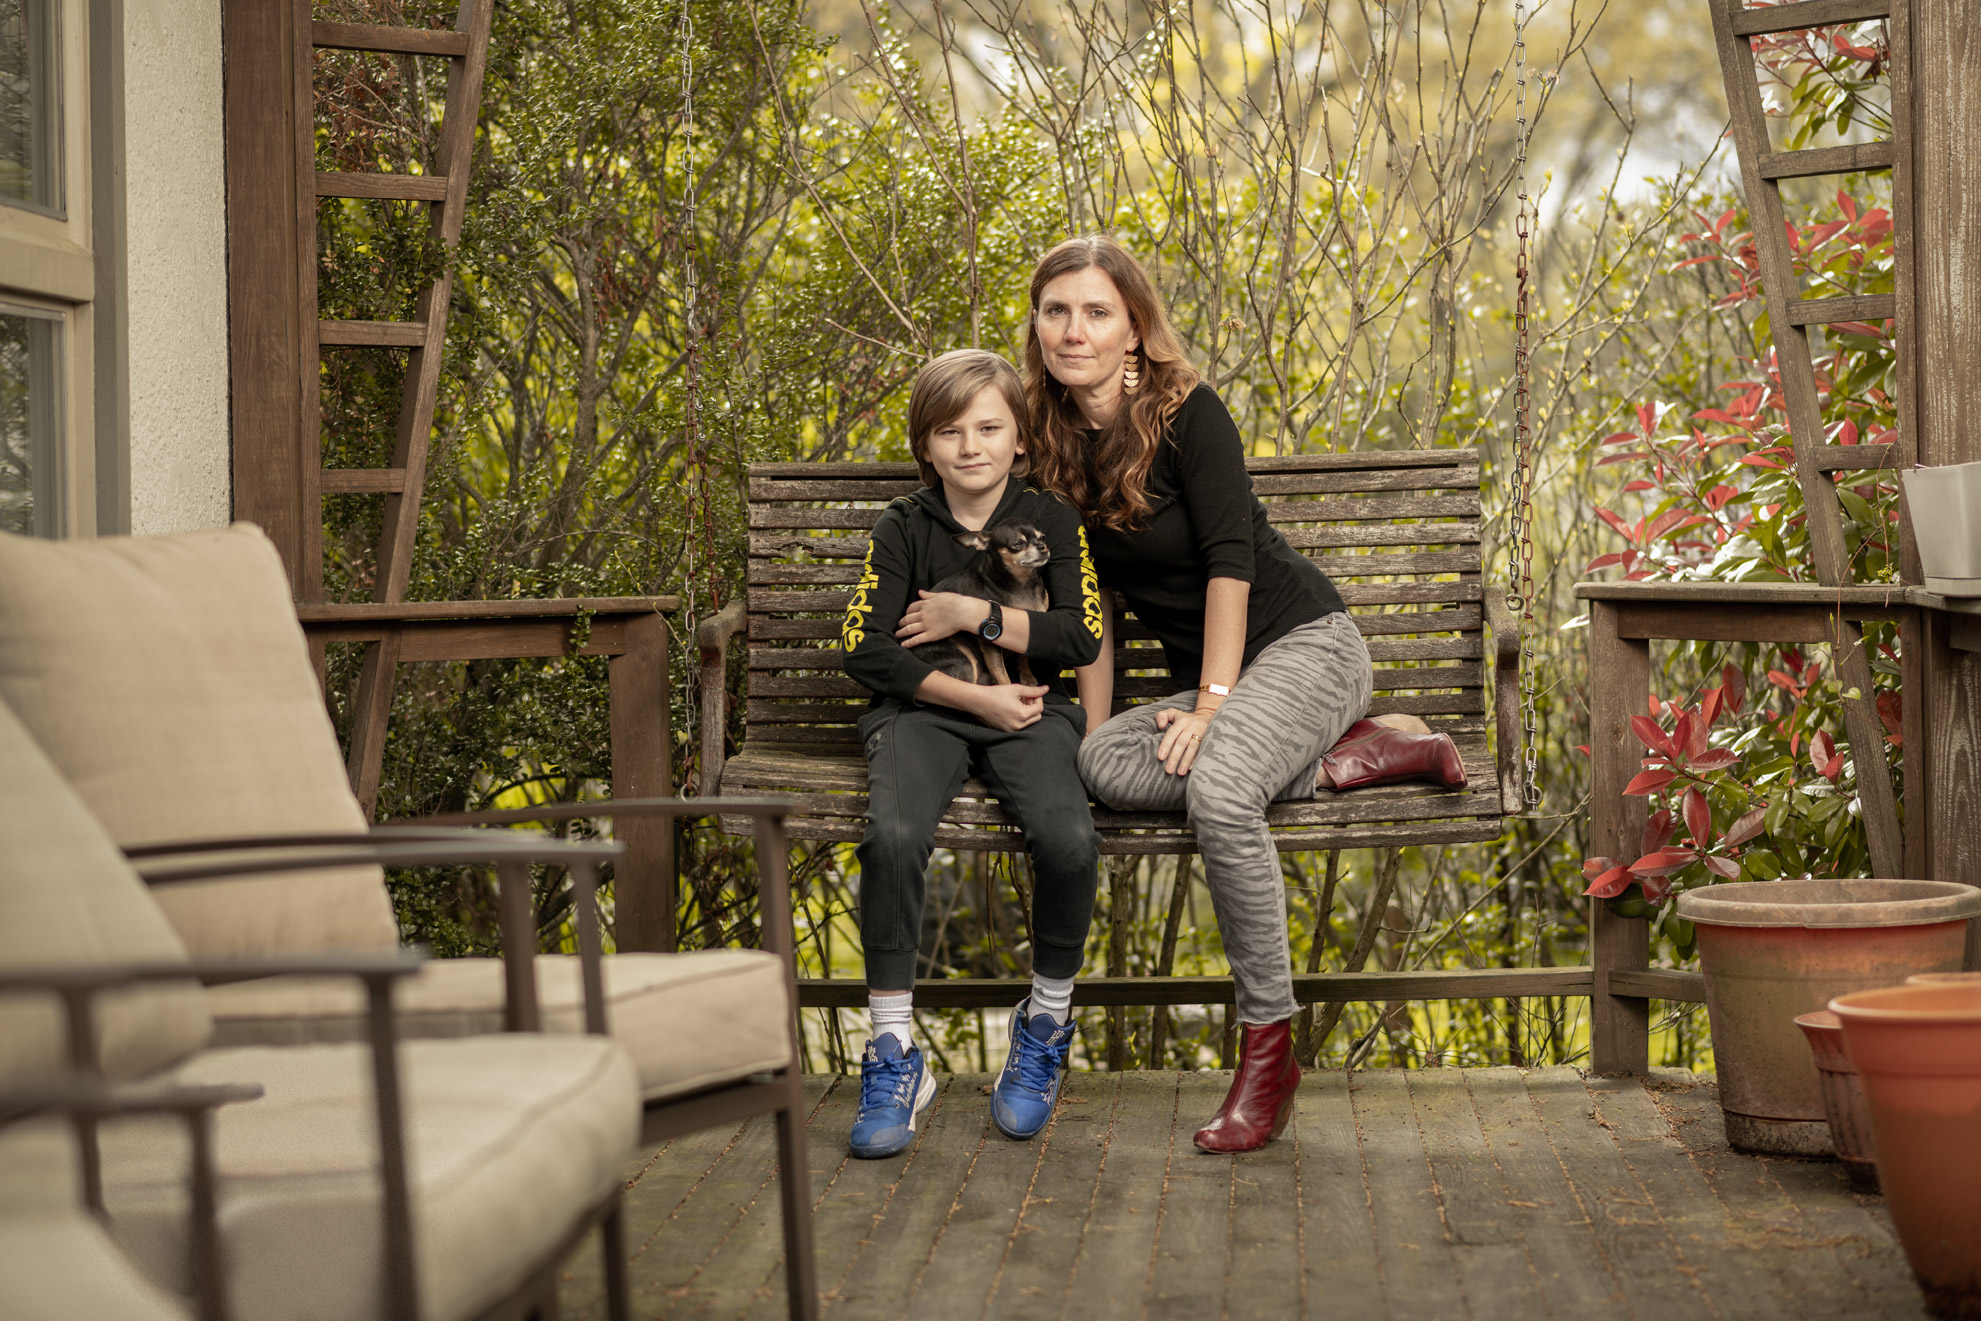 COVID-19 survivor Cara Ober and her son seated on a porch swing at her home